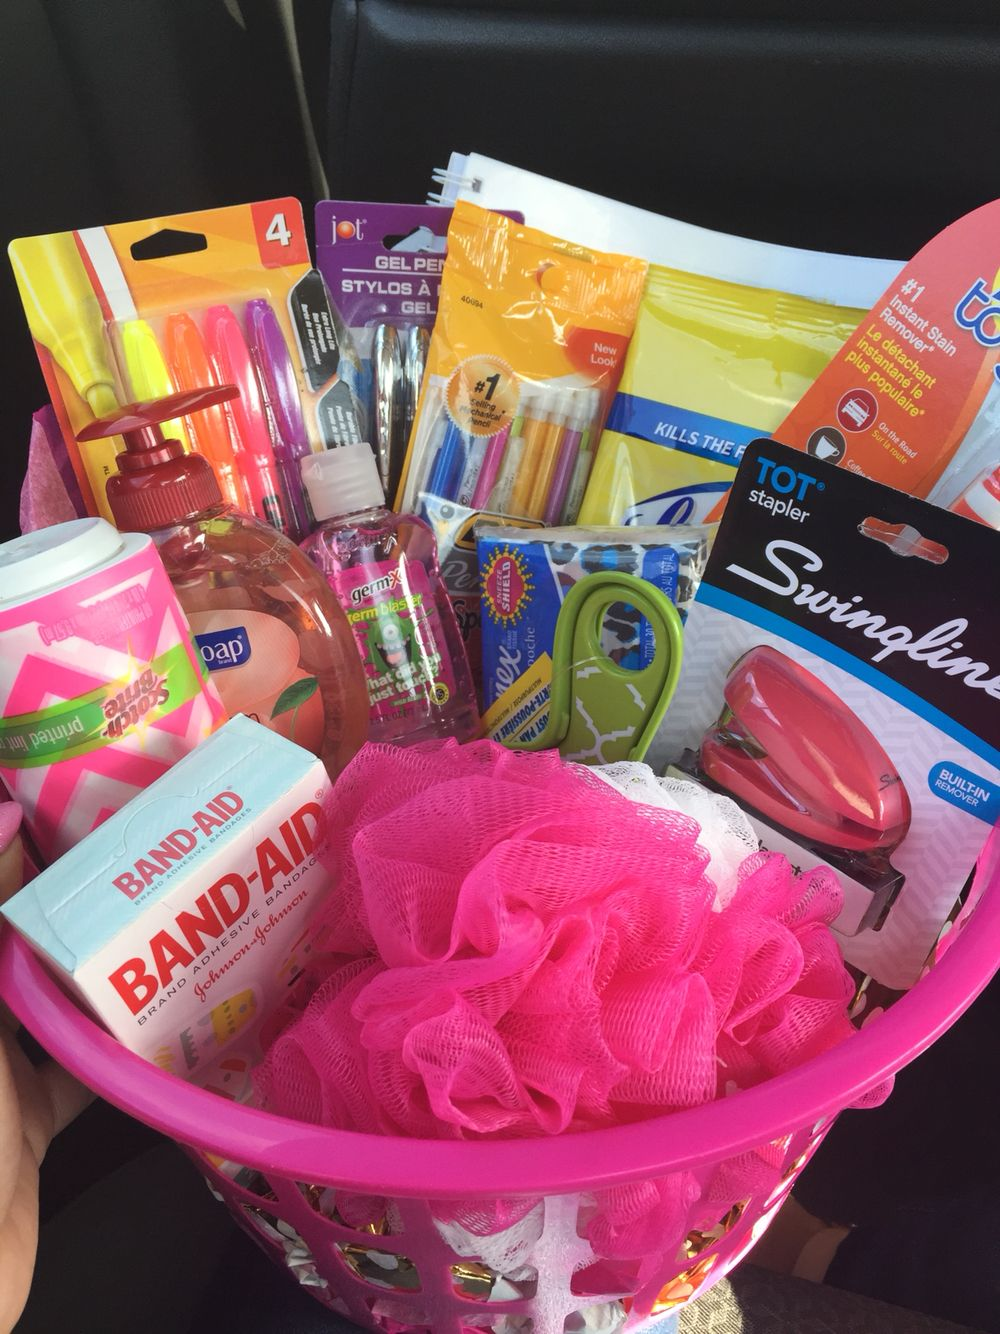 Made My Friend A Going Away Basket For College With All Necessities She Loved It Graduation Gift Basket College Gift Basket For Girls Diy Graduation Gifts